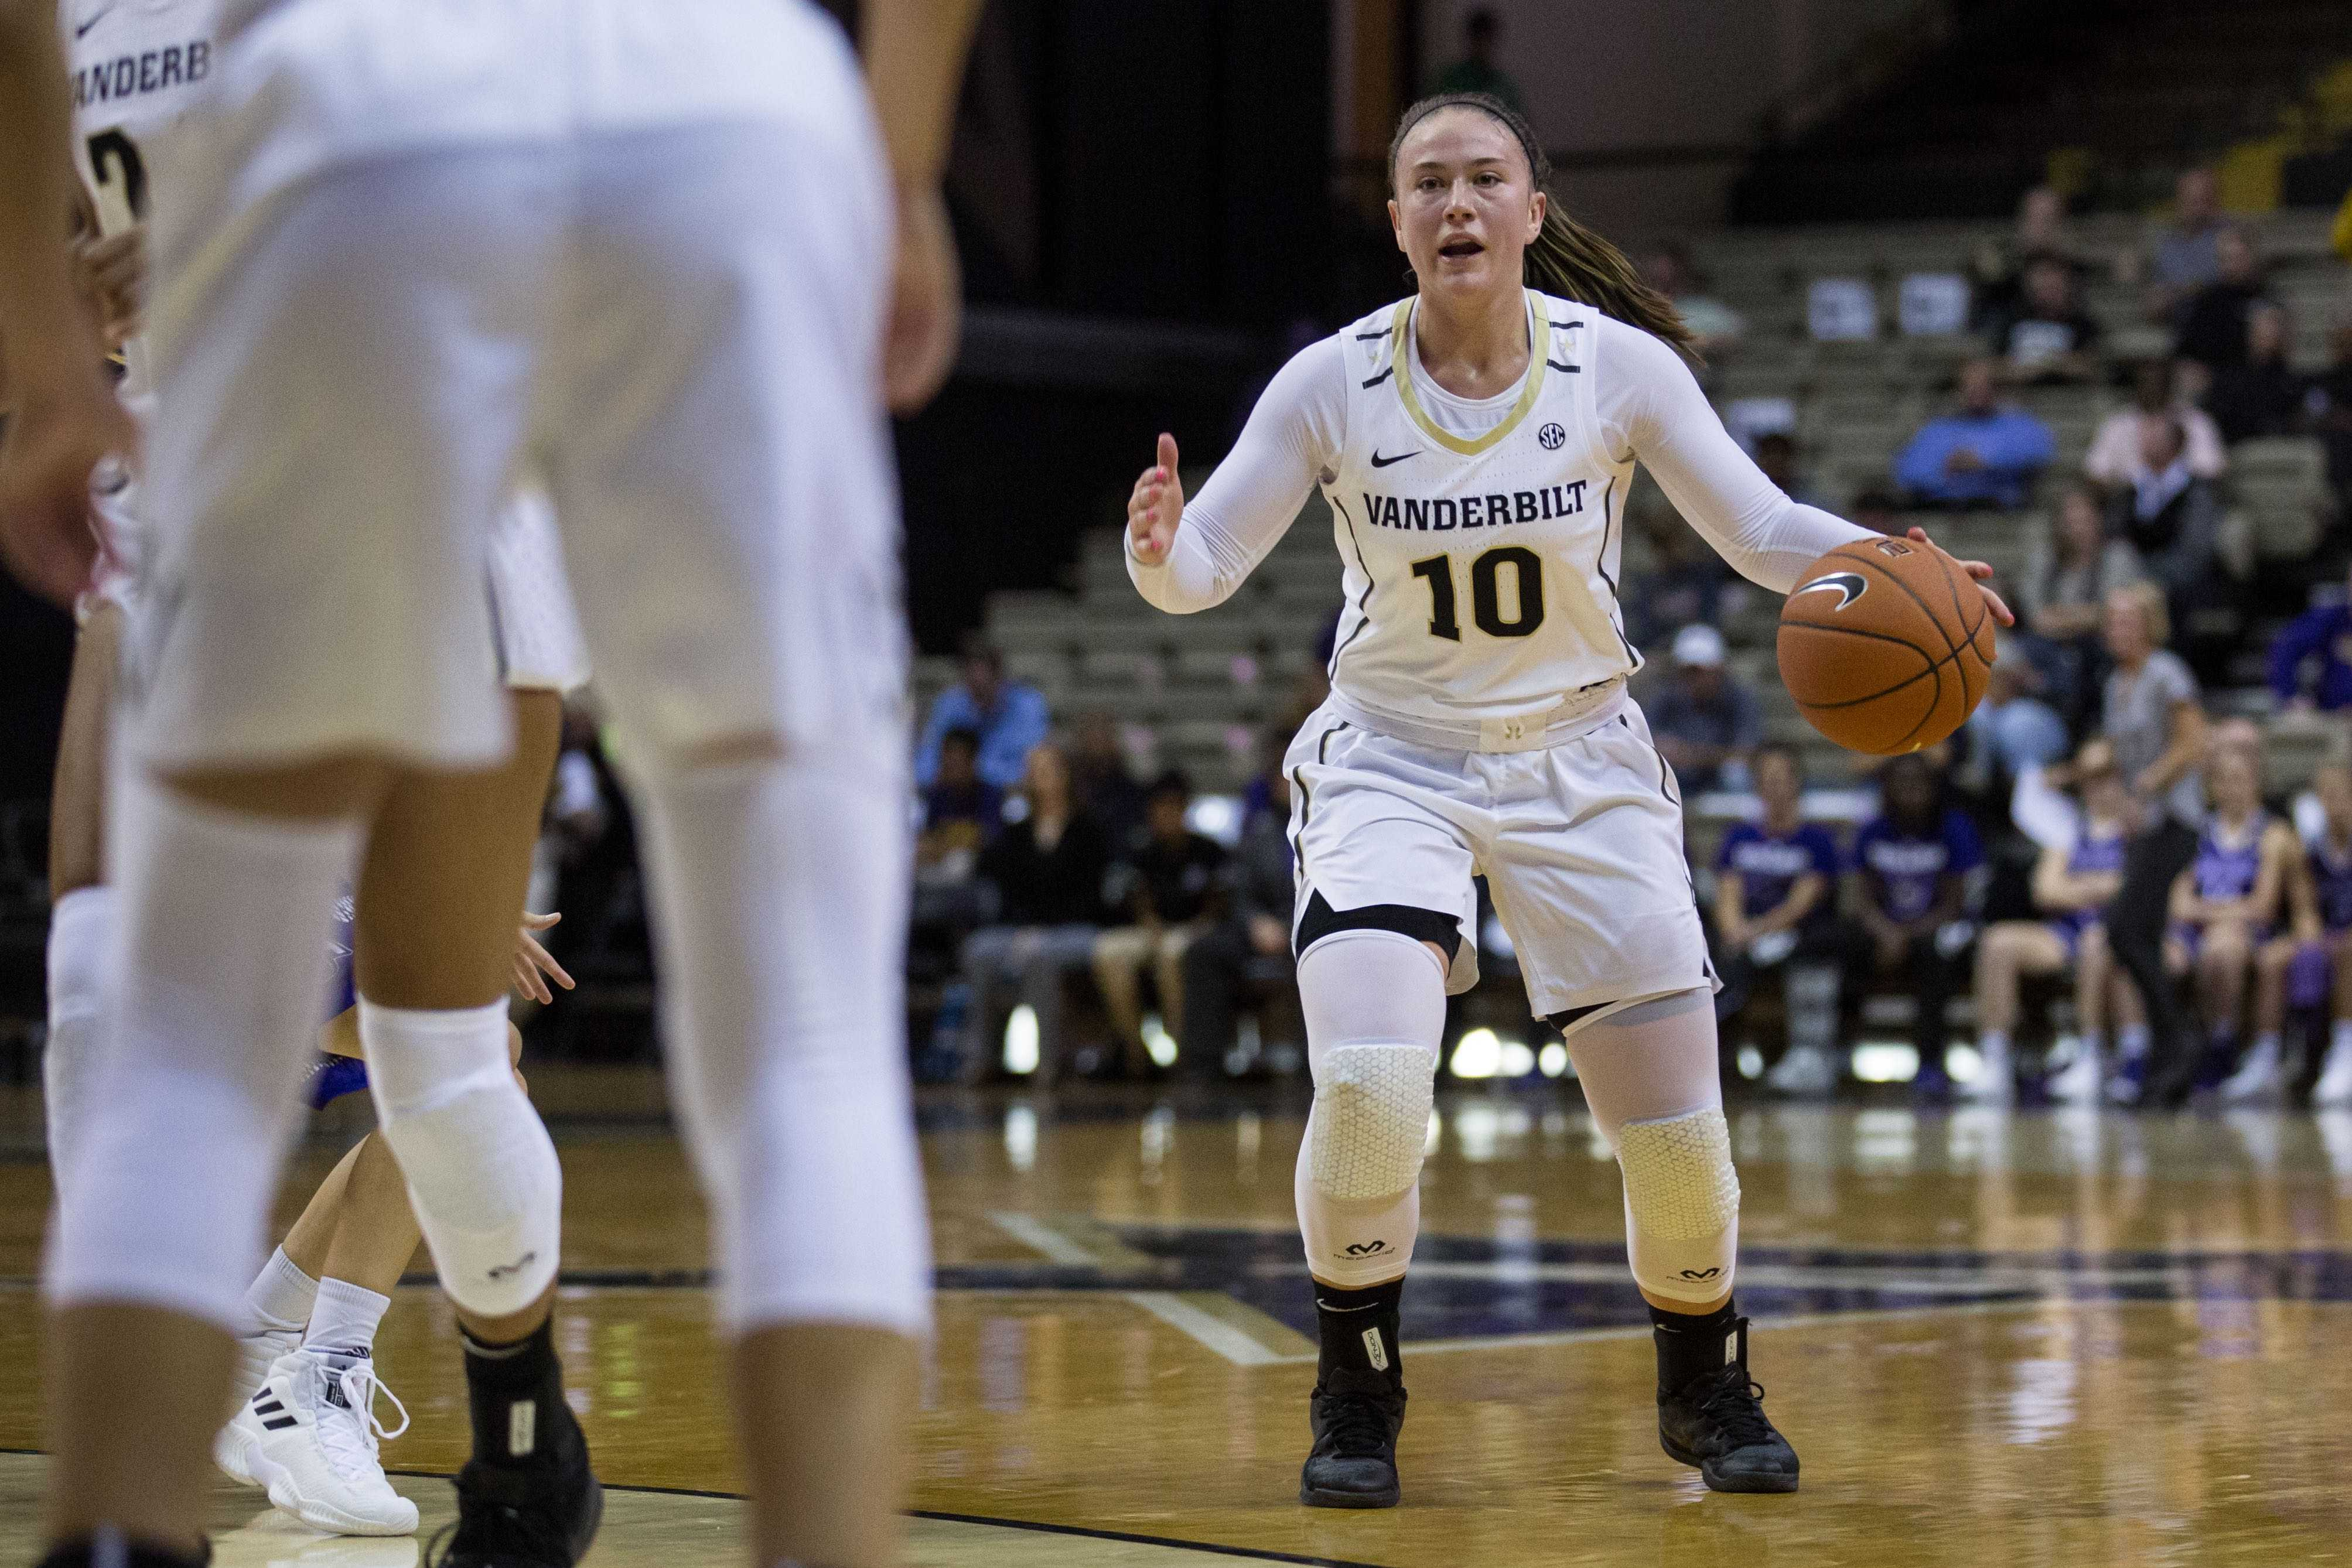 Vanderbilt Women's Basketball loses heartbreaker to Auburn at Memorial Gym